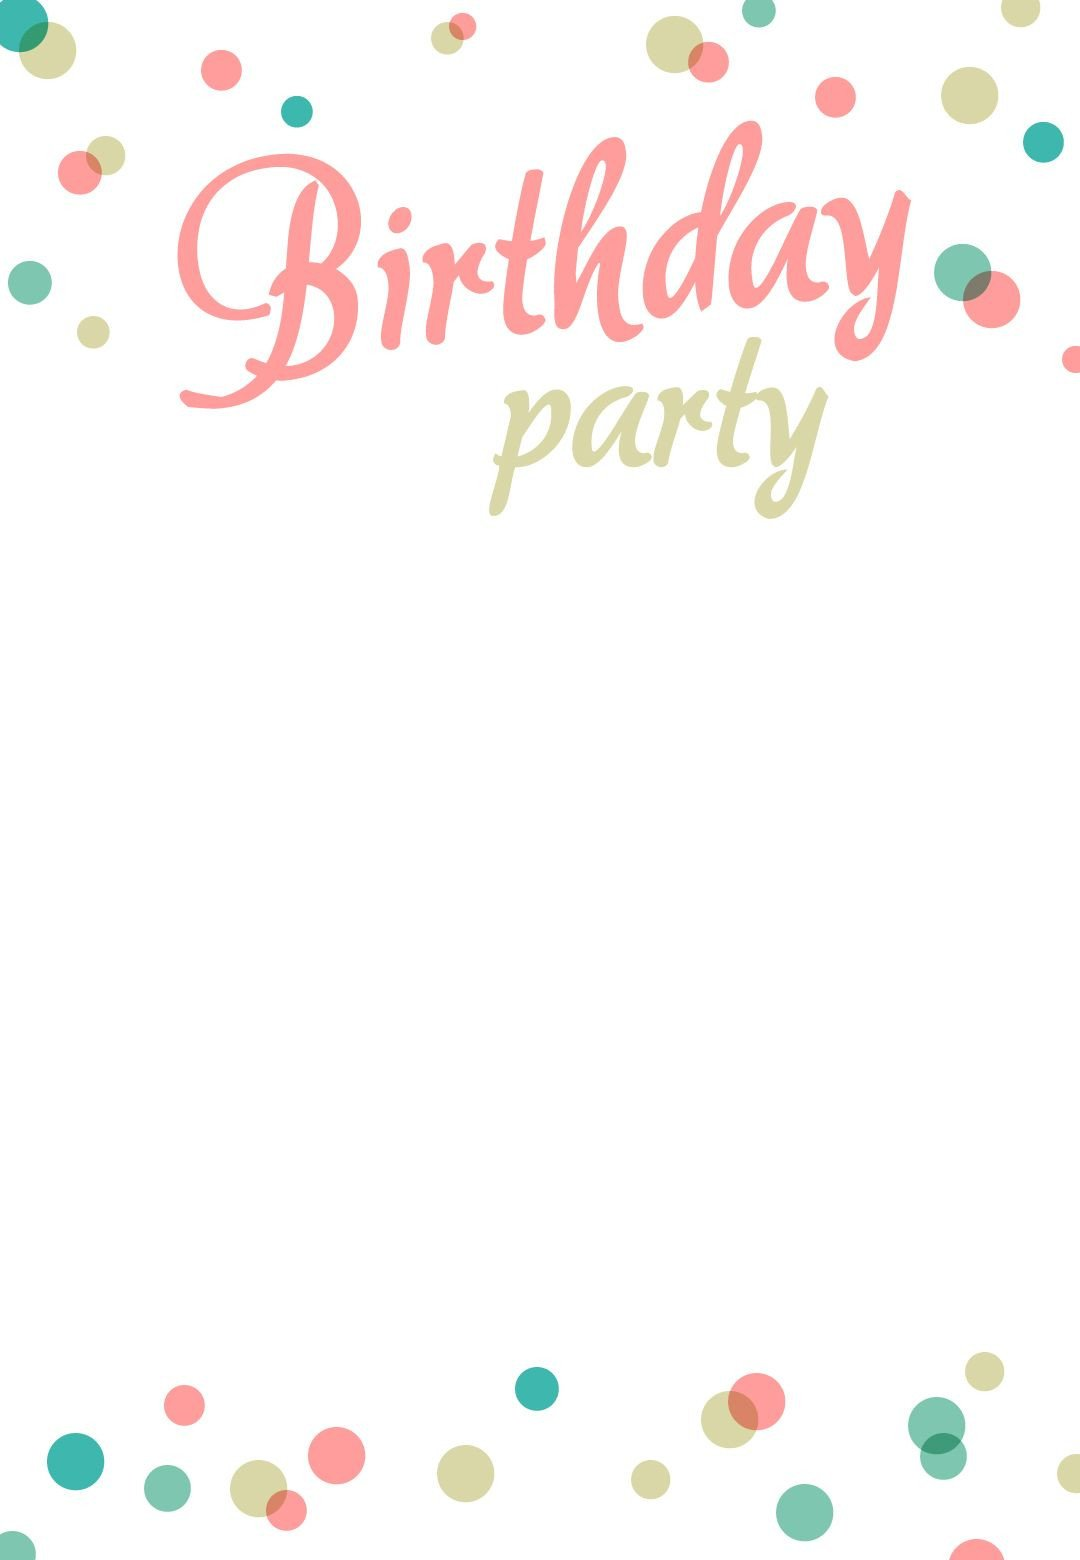 Free Party Invitation Template Word Birthday Party Invitation Free Printable